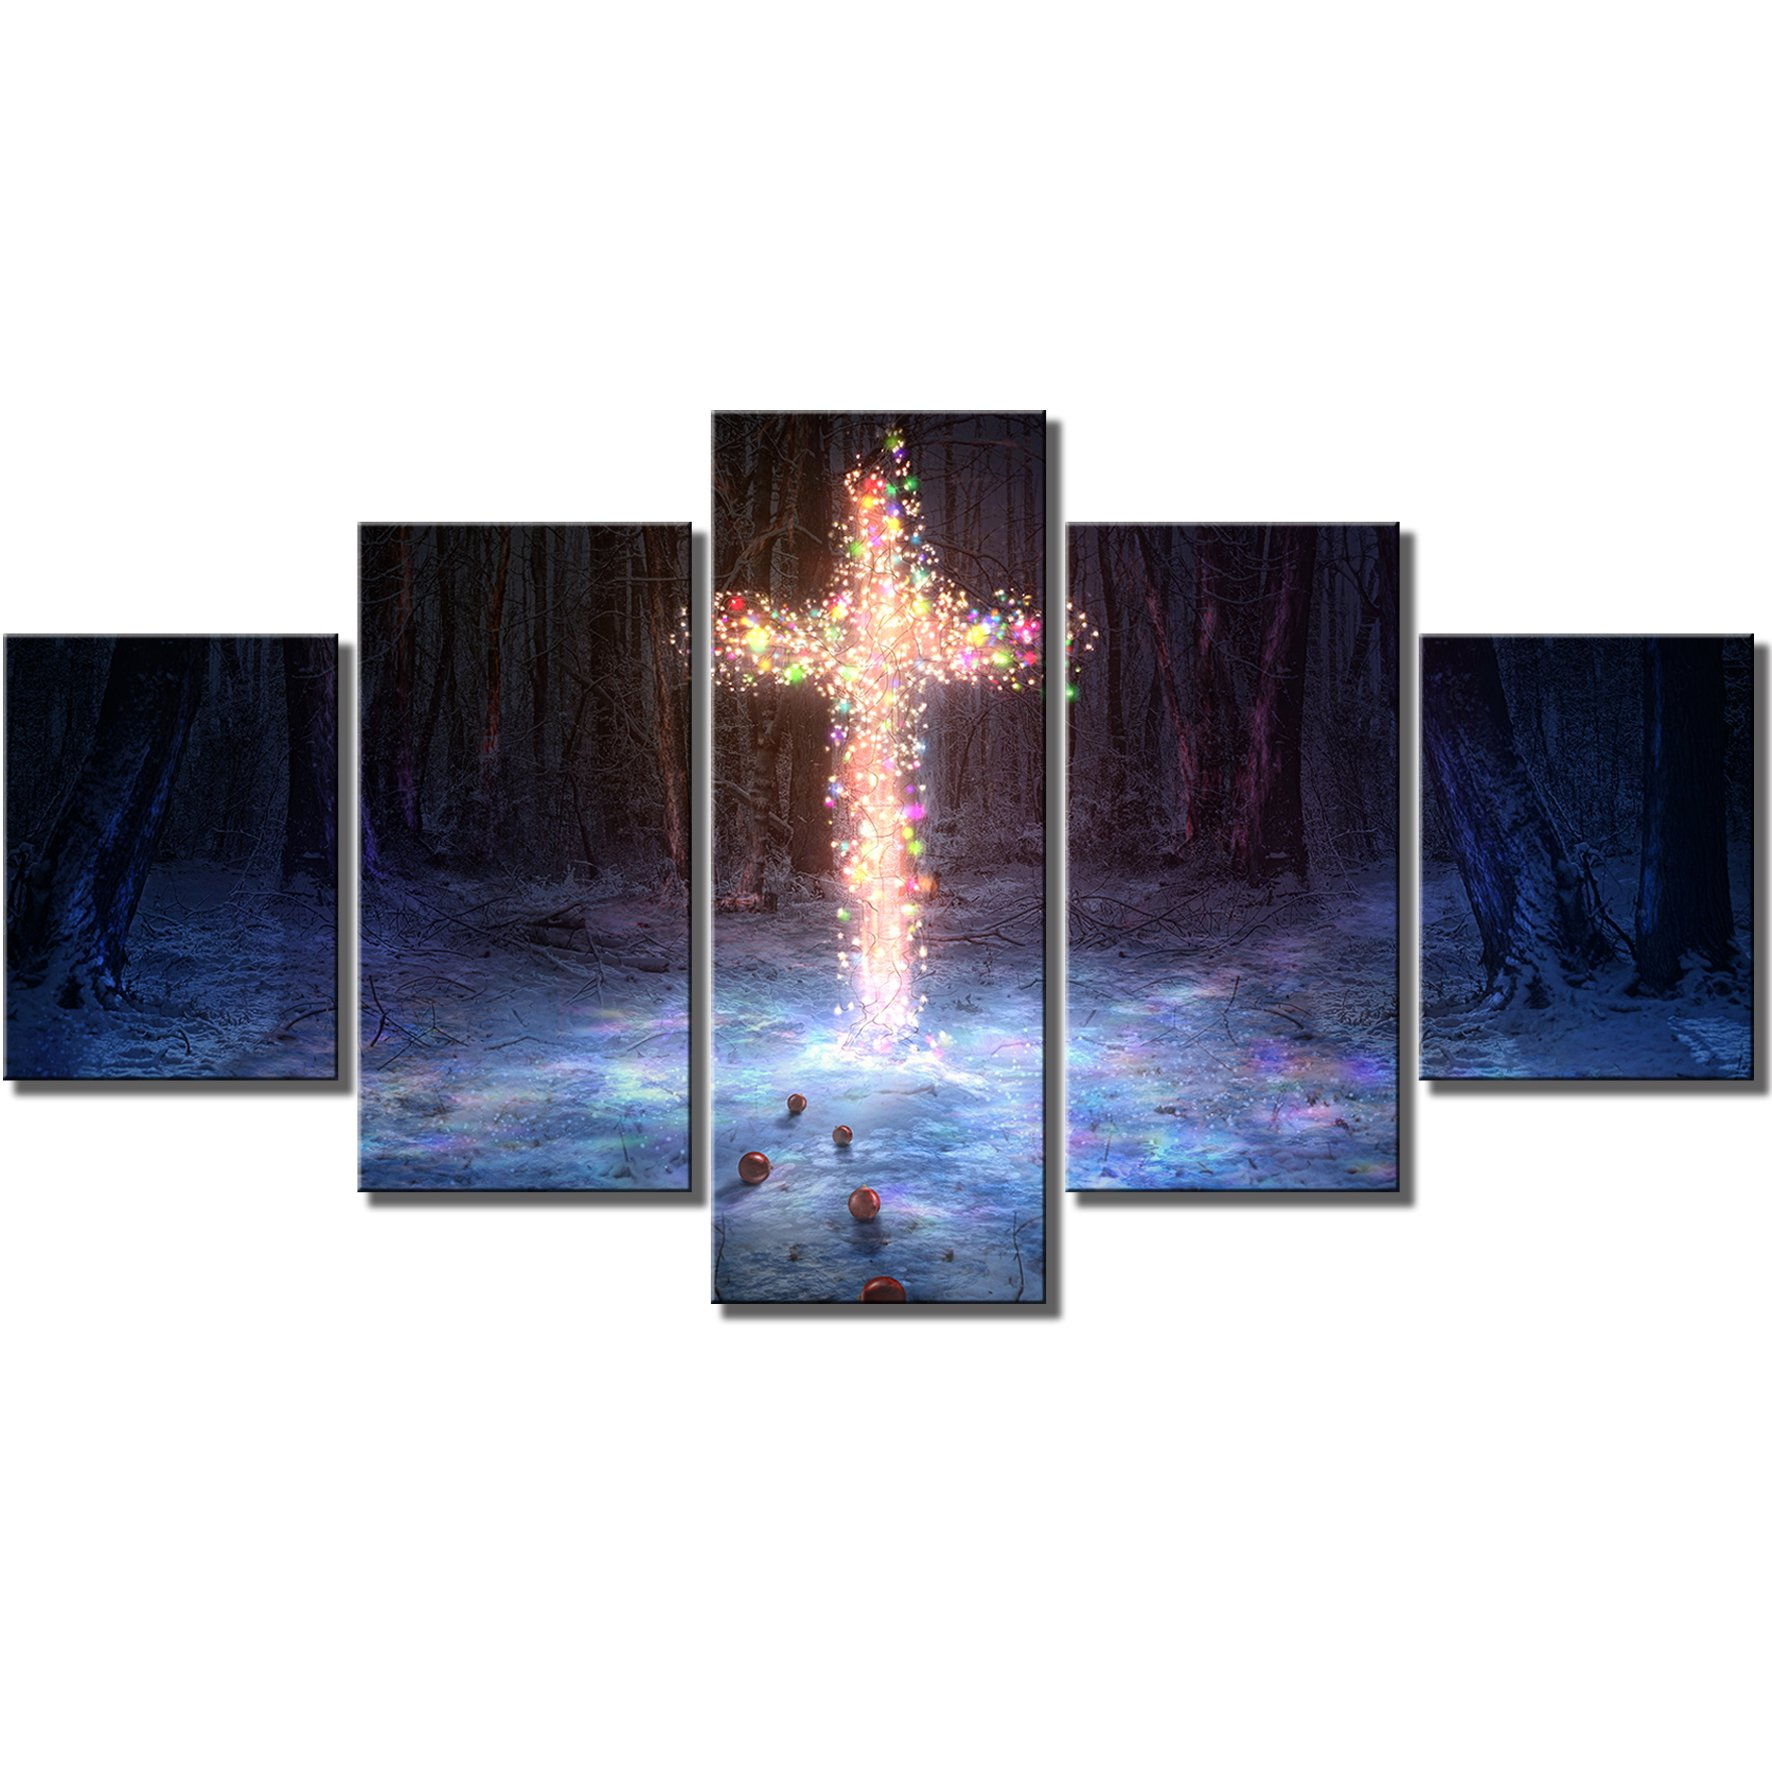 KLVOS Large Framed Canvas Prints Wall Art A Cross in the Forest Lit up with Christmas Lights 5 Panels Christian Painting Pictures for Wall Ready Handing on 32inchx60inch in Total by KLVOS